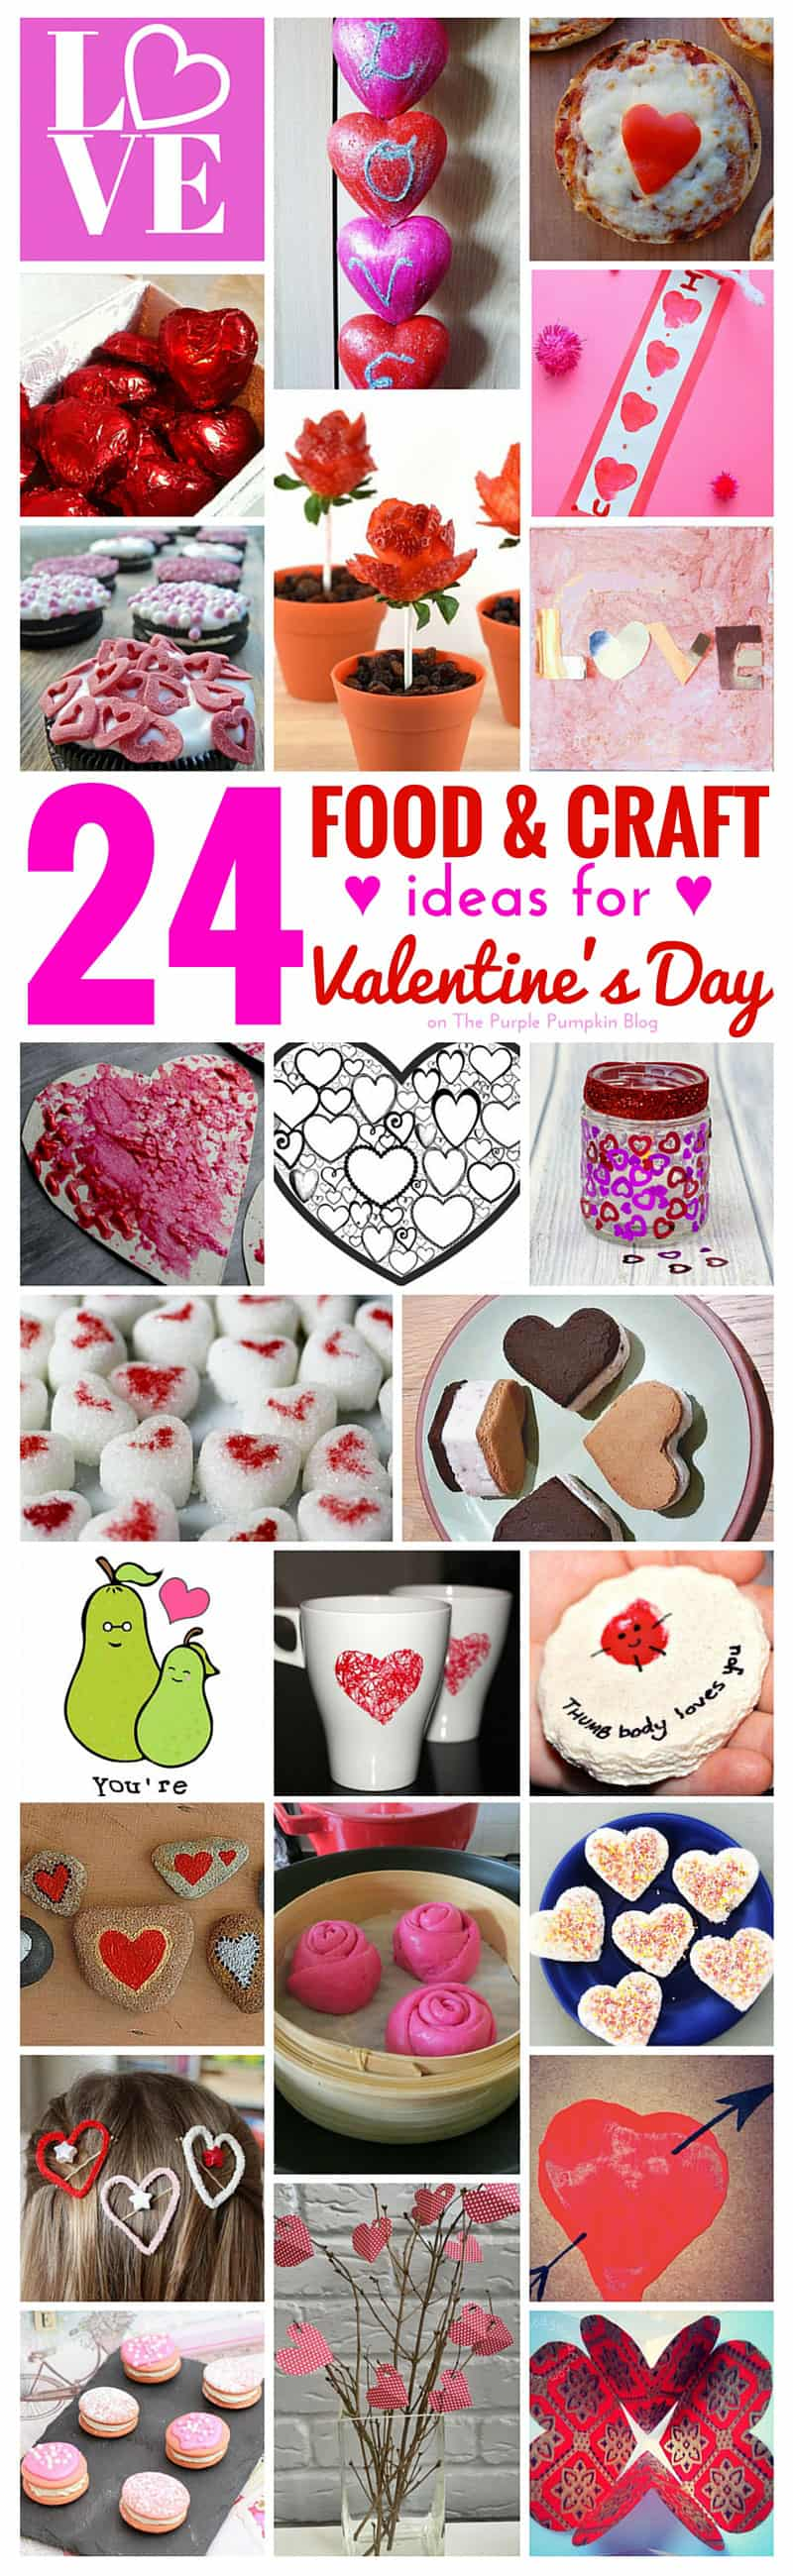 24 food craft ideas for valentine 39 s day the purple for Craft ideas for valentines day